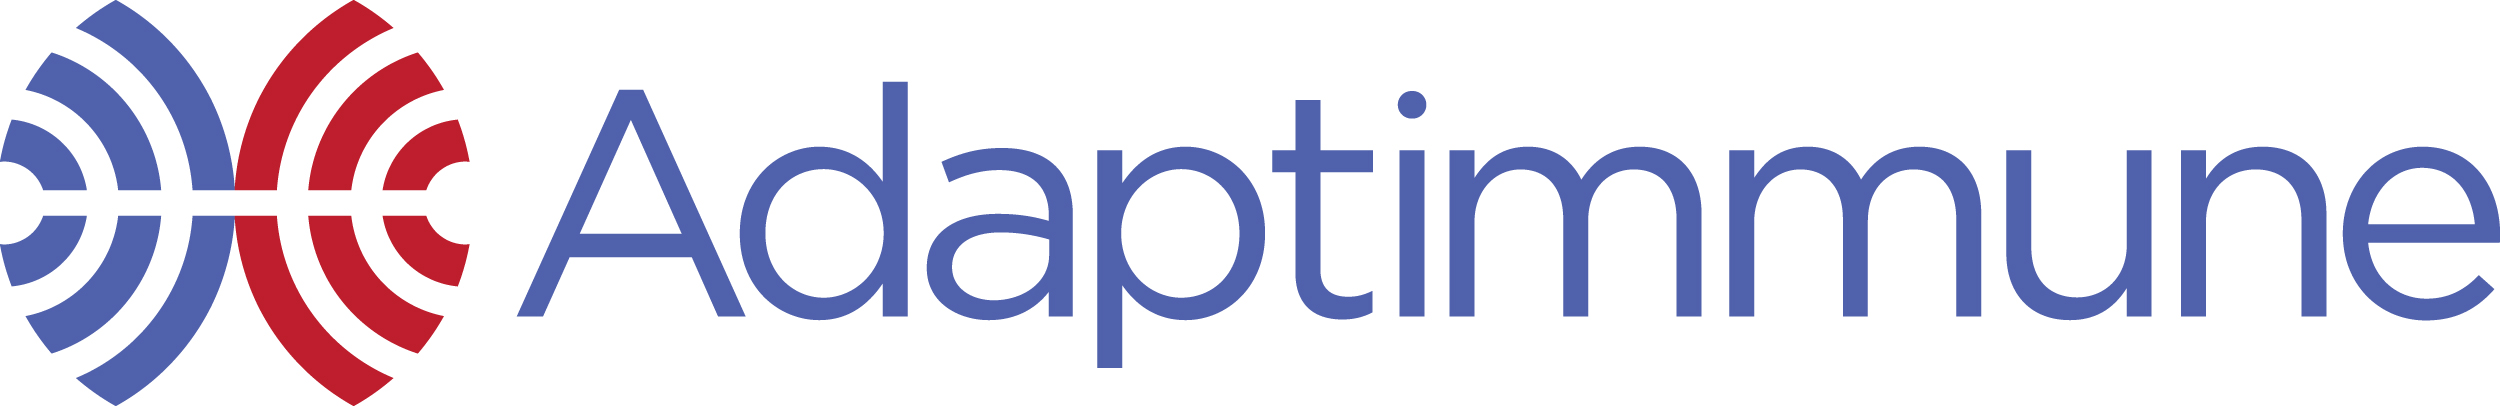 Adaptimmune logo Colour_white background_no strap.jpg